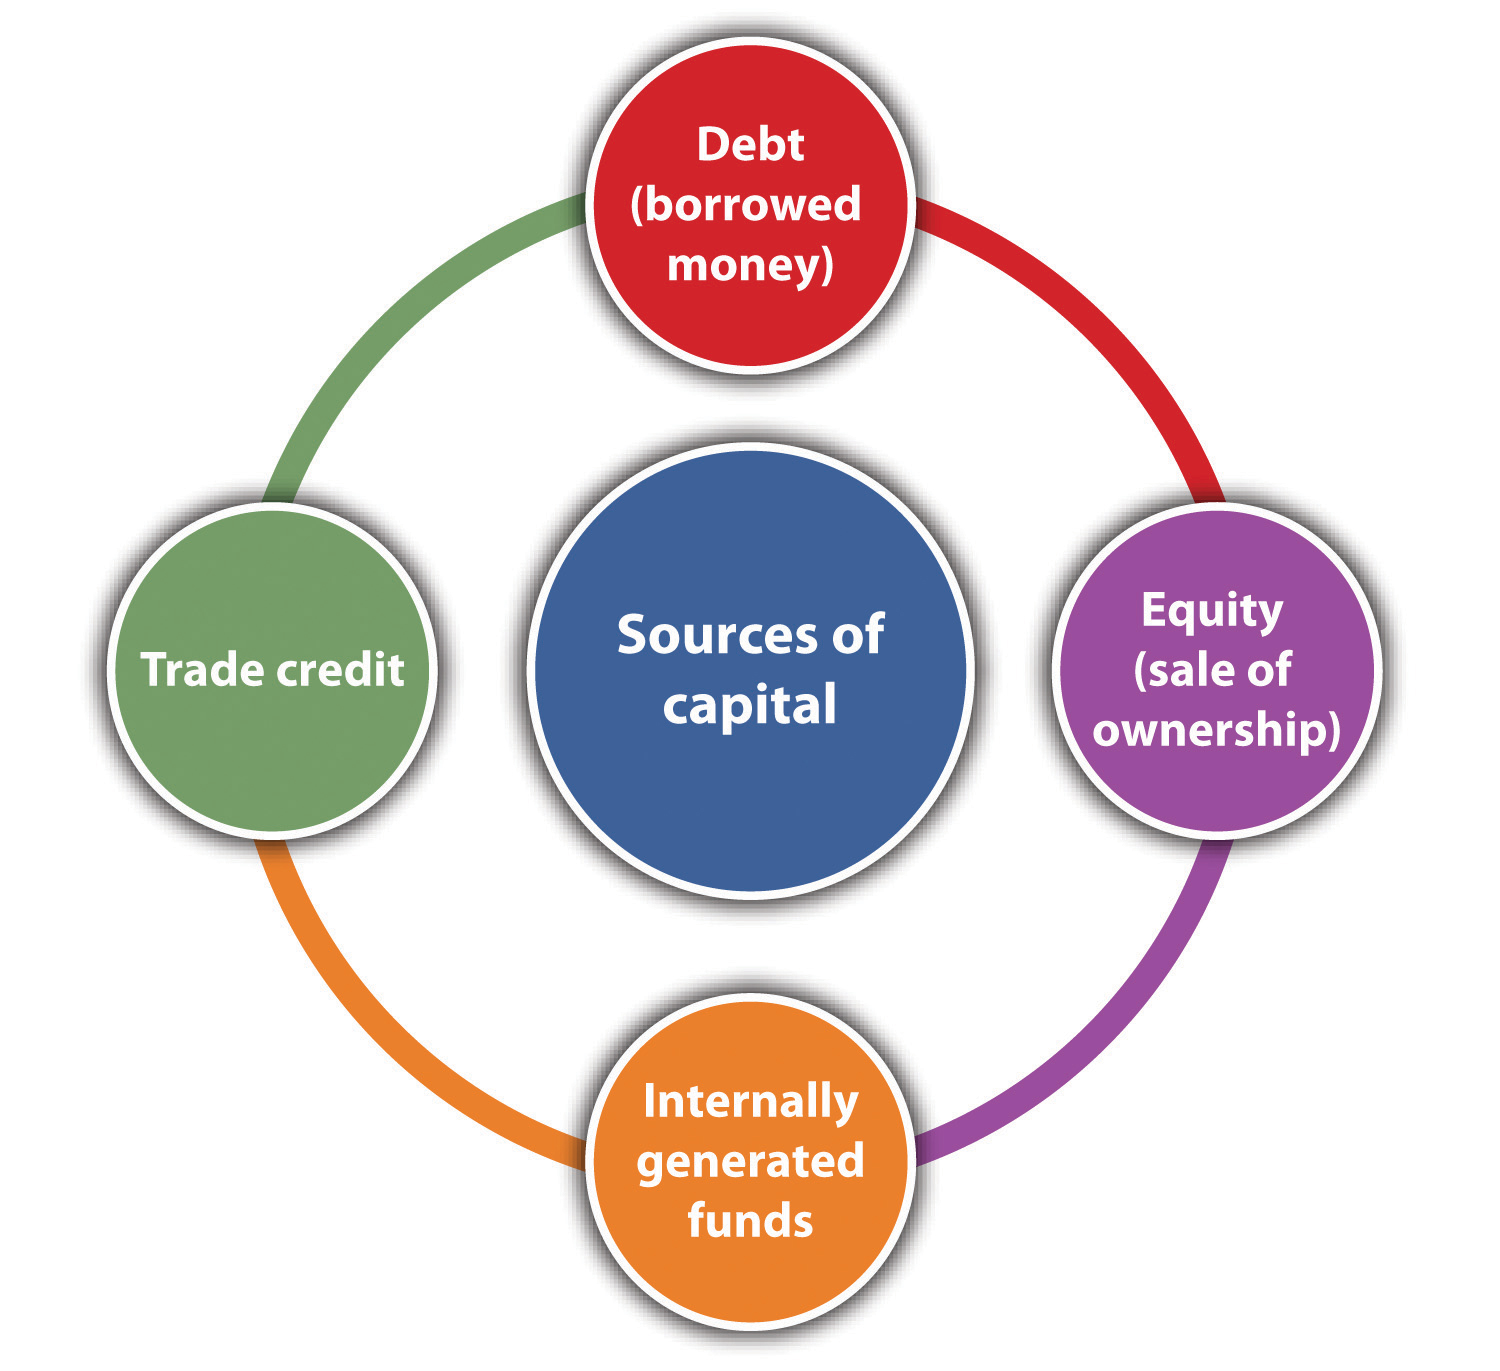 sources of debt and equity funding